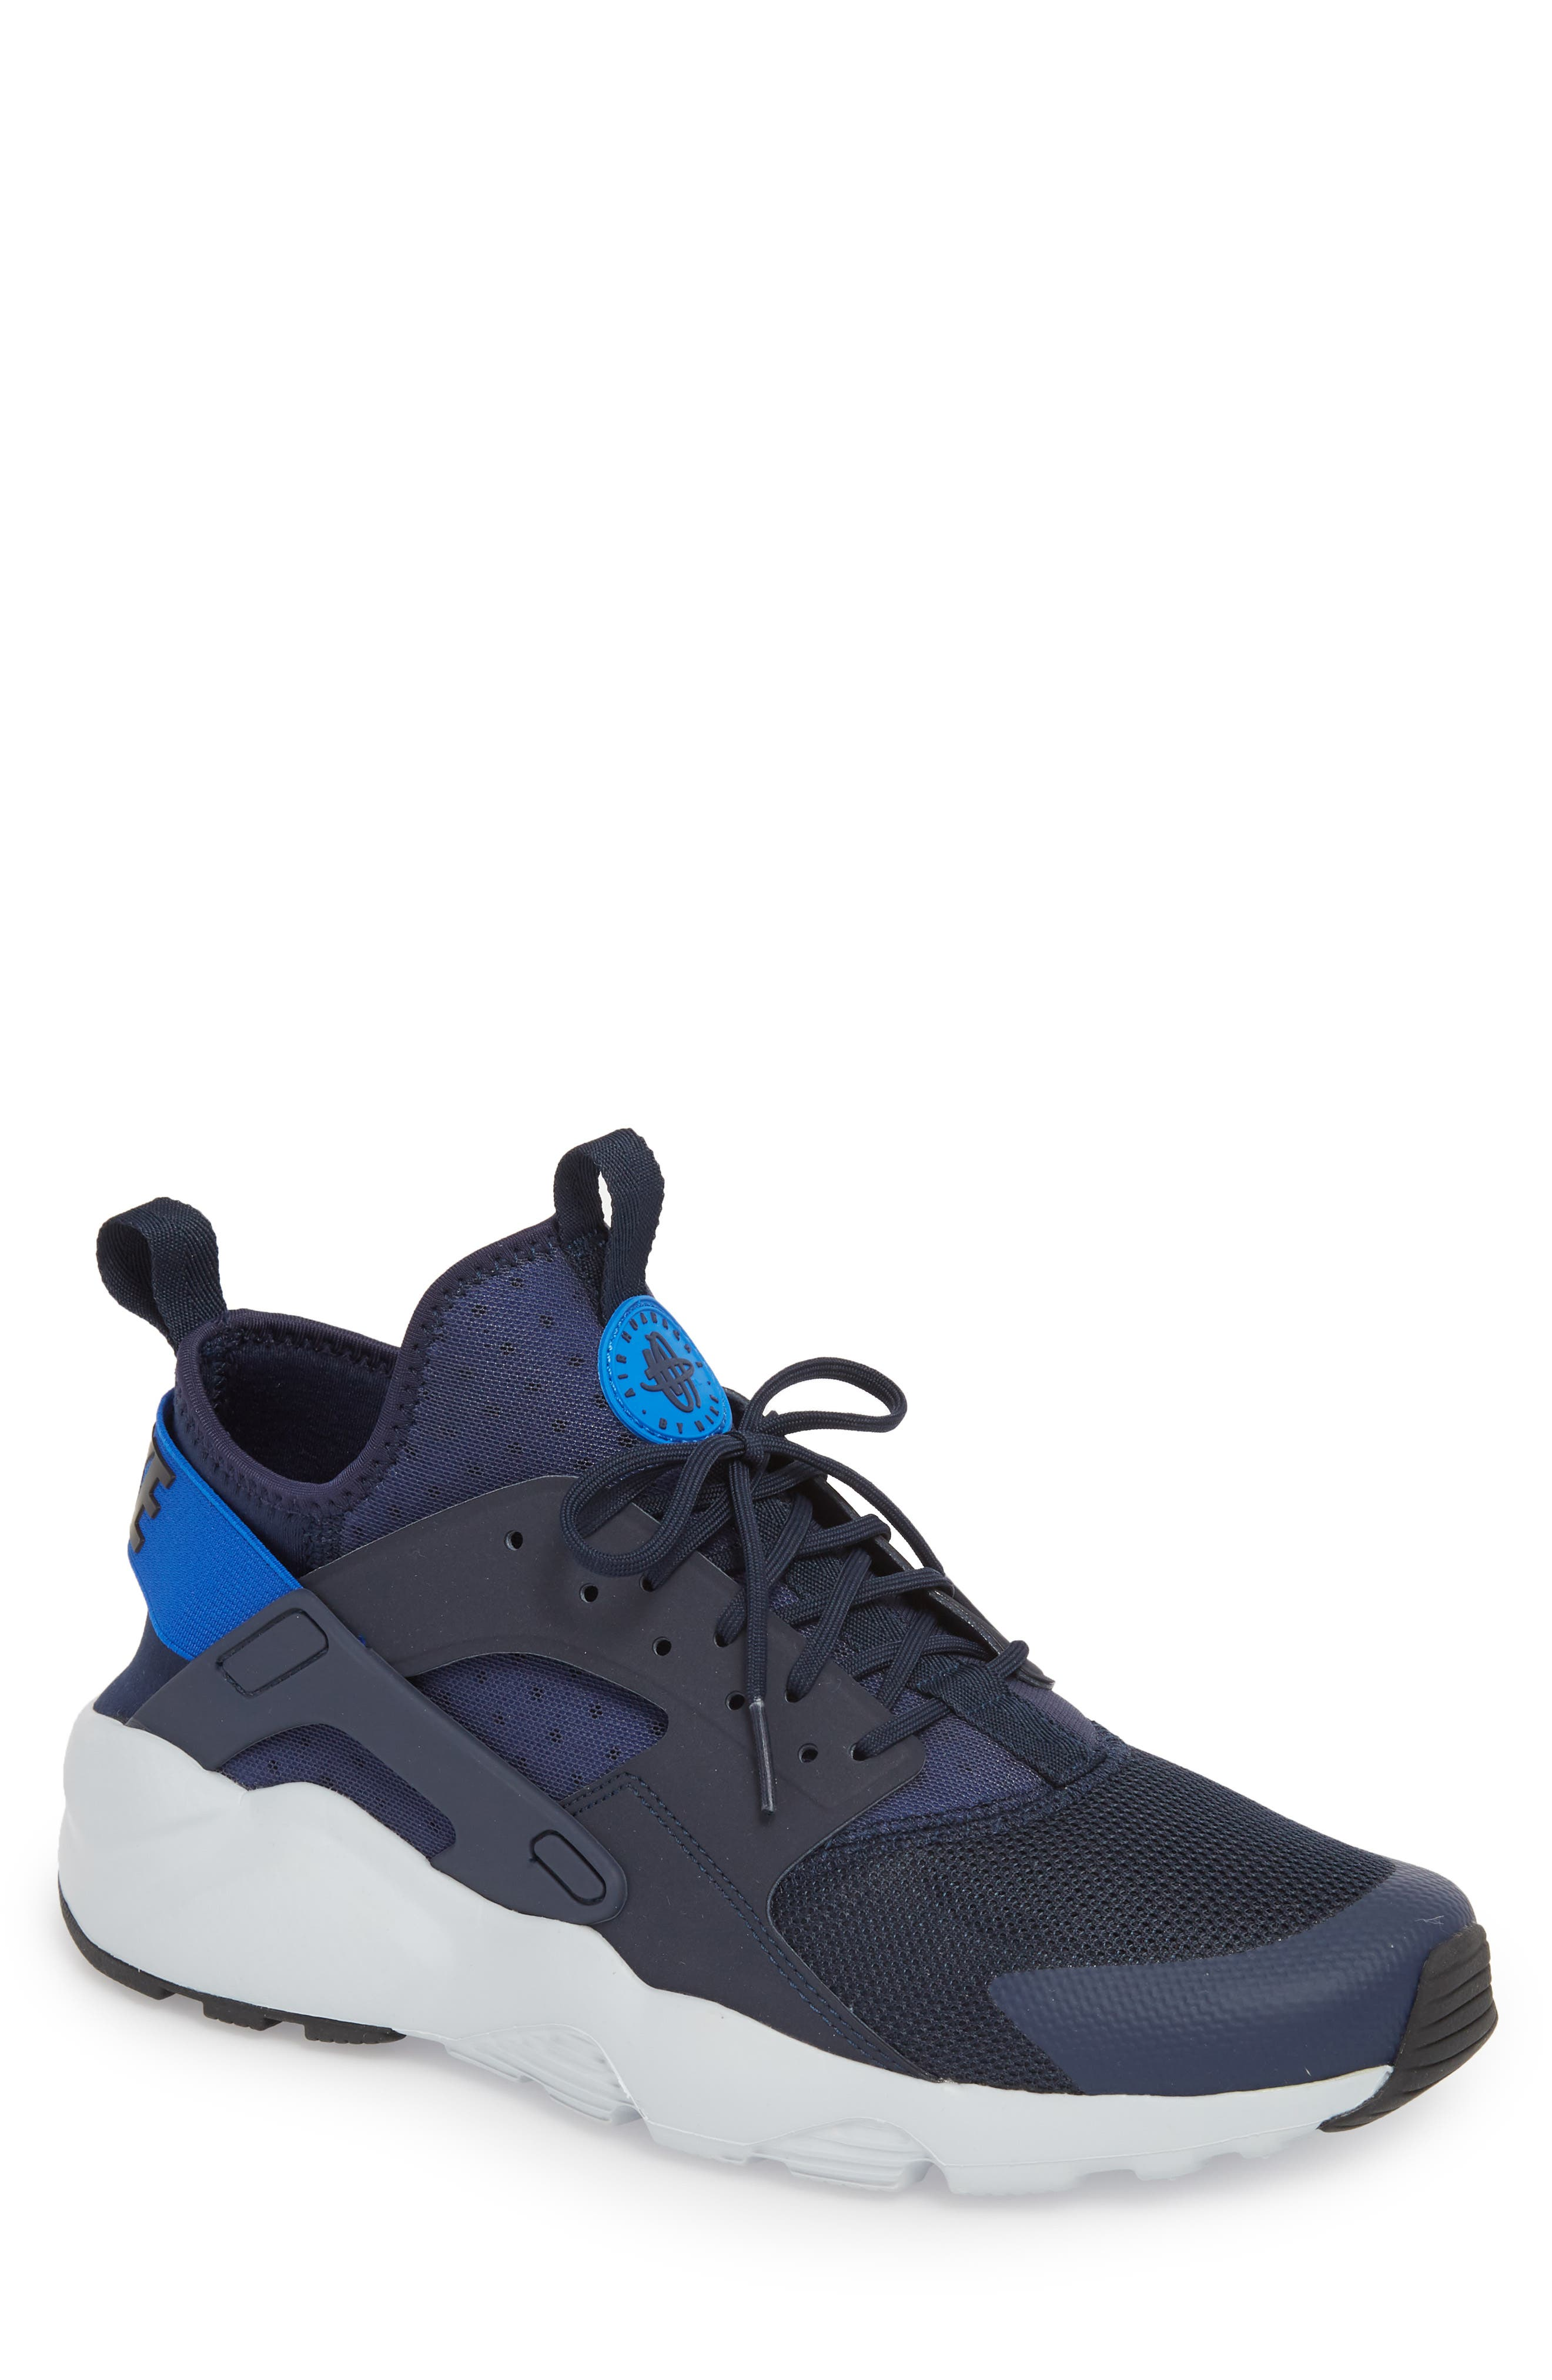 Air Huarache Run Ultra Sneaker,                             Main thumbnail 1, color,                             412